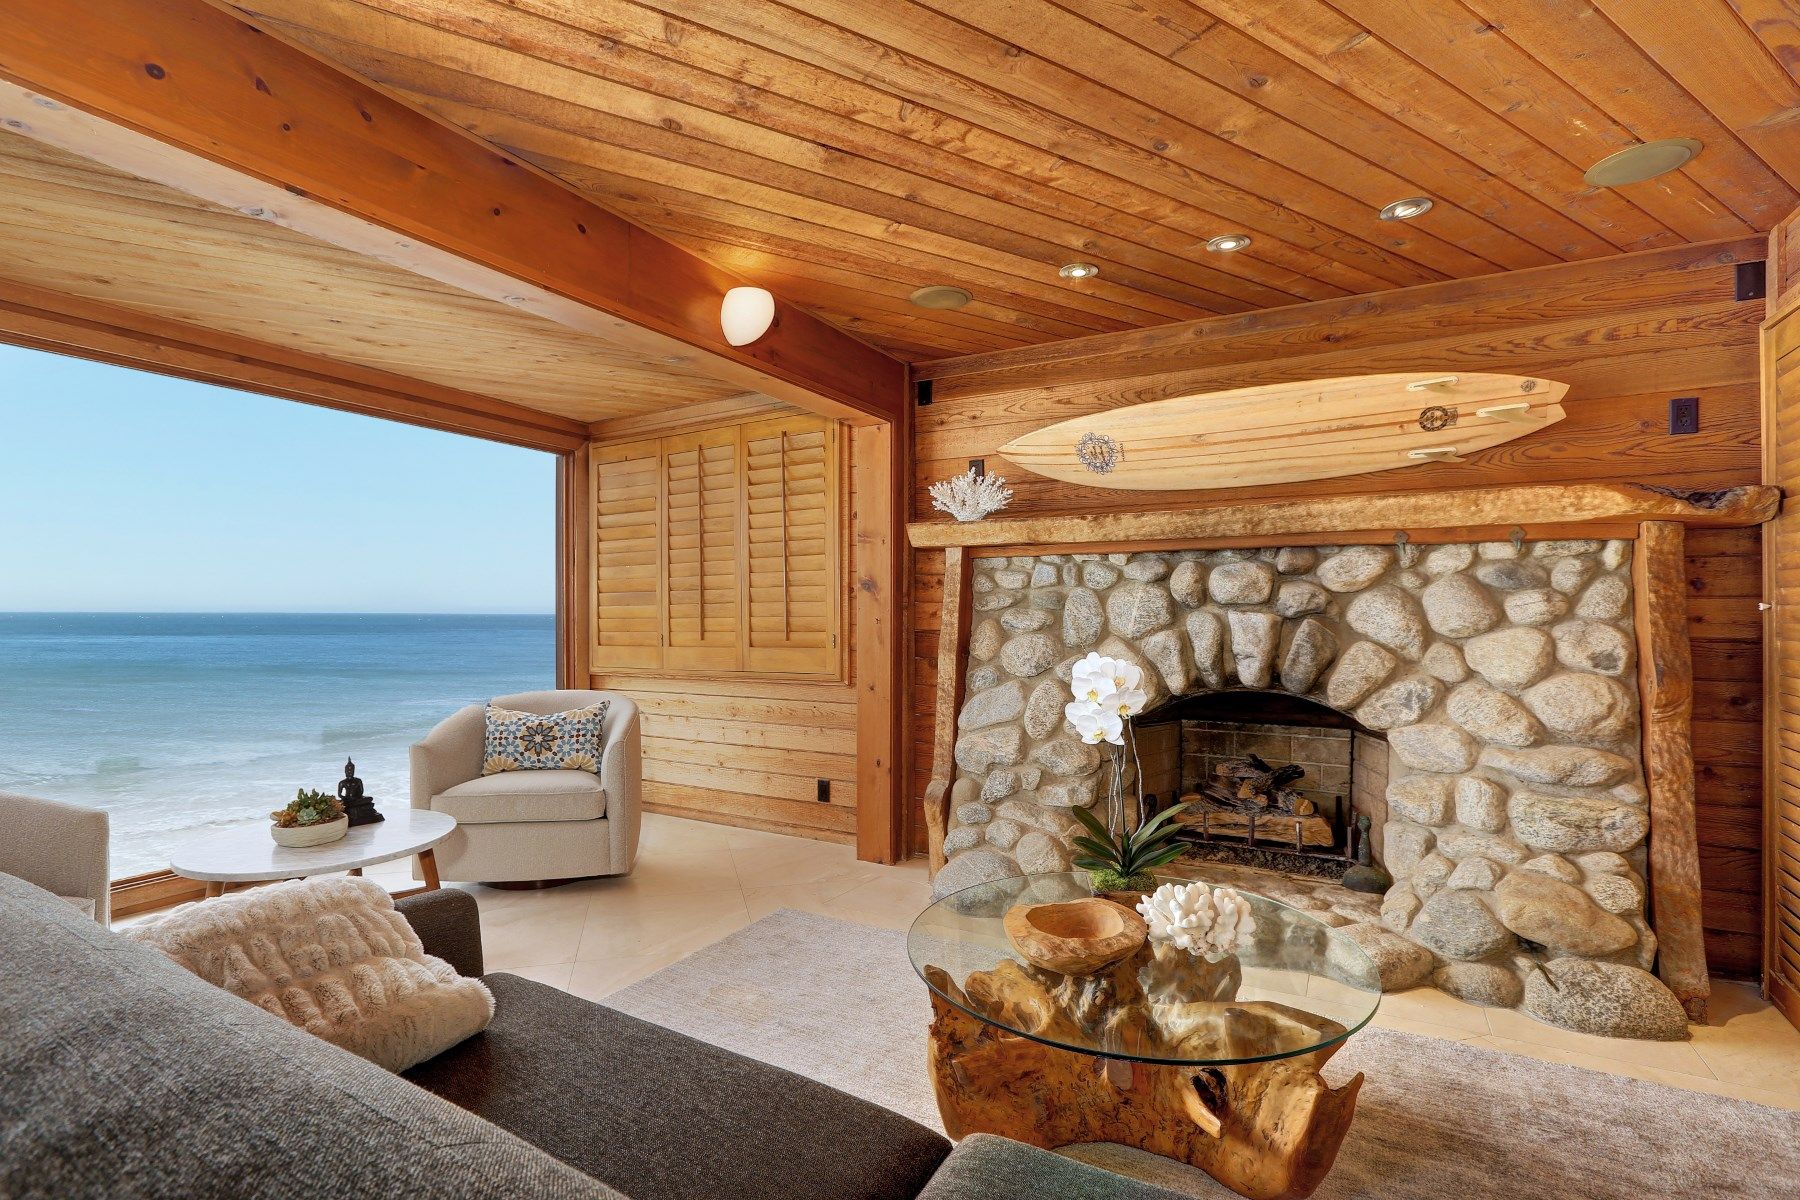 Single Family Home for Rent at Fantastic Beach Front Rental 19056 Pacific Coast Hwy Malibu, California, 90265 United States